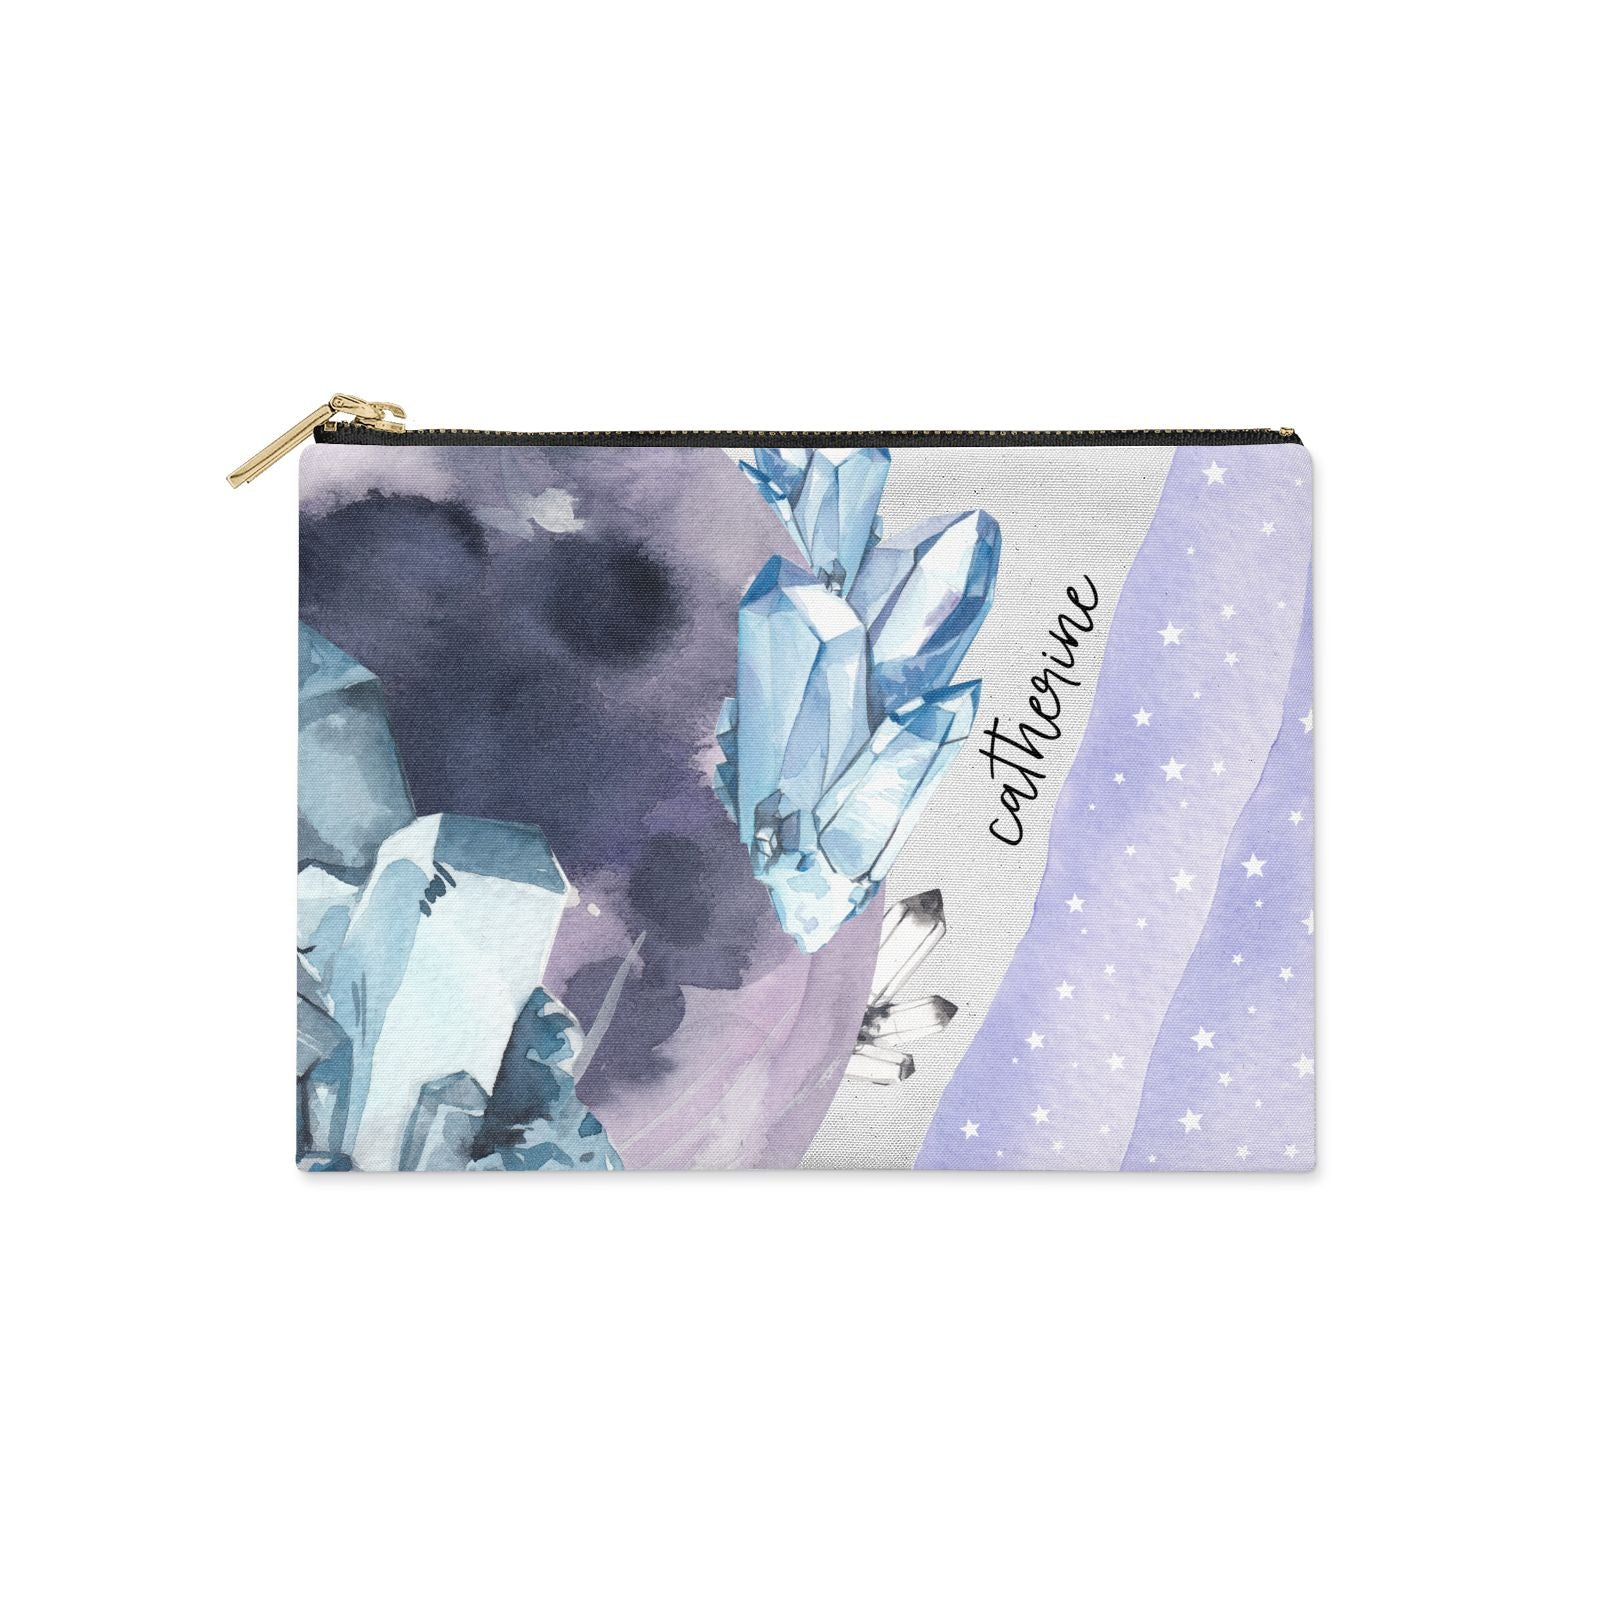 Crystals Personalised Name Clutch Bag Zipper Pouch